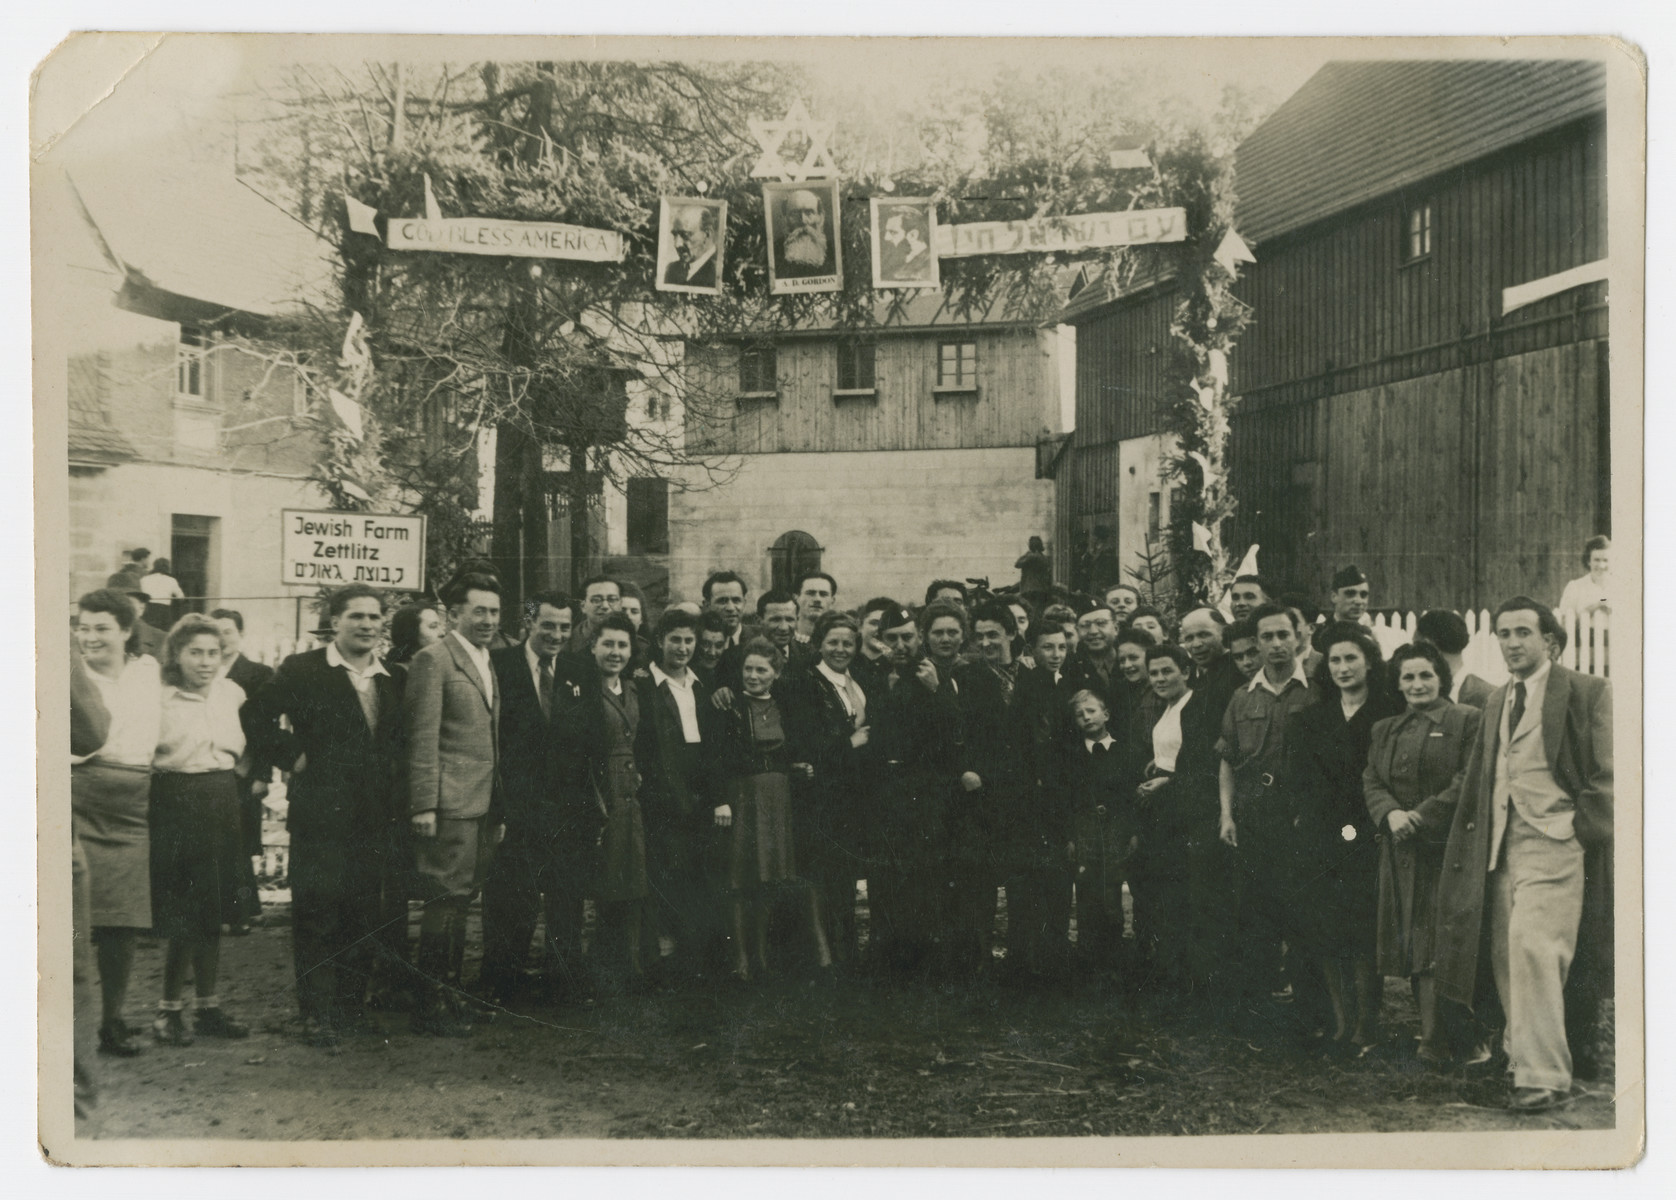 Group portrait of young Zionists in the Zeittlitz training farm posing underneath posters of Weizmann, Gordon and Herzl.